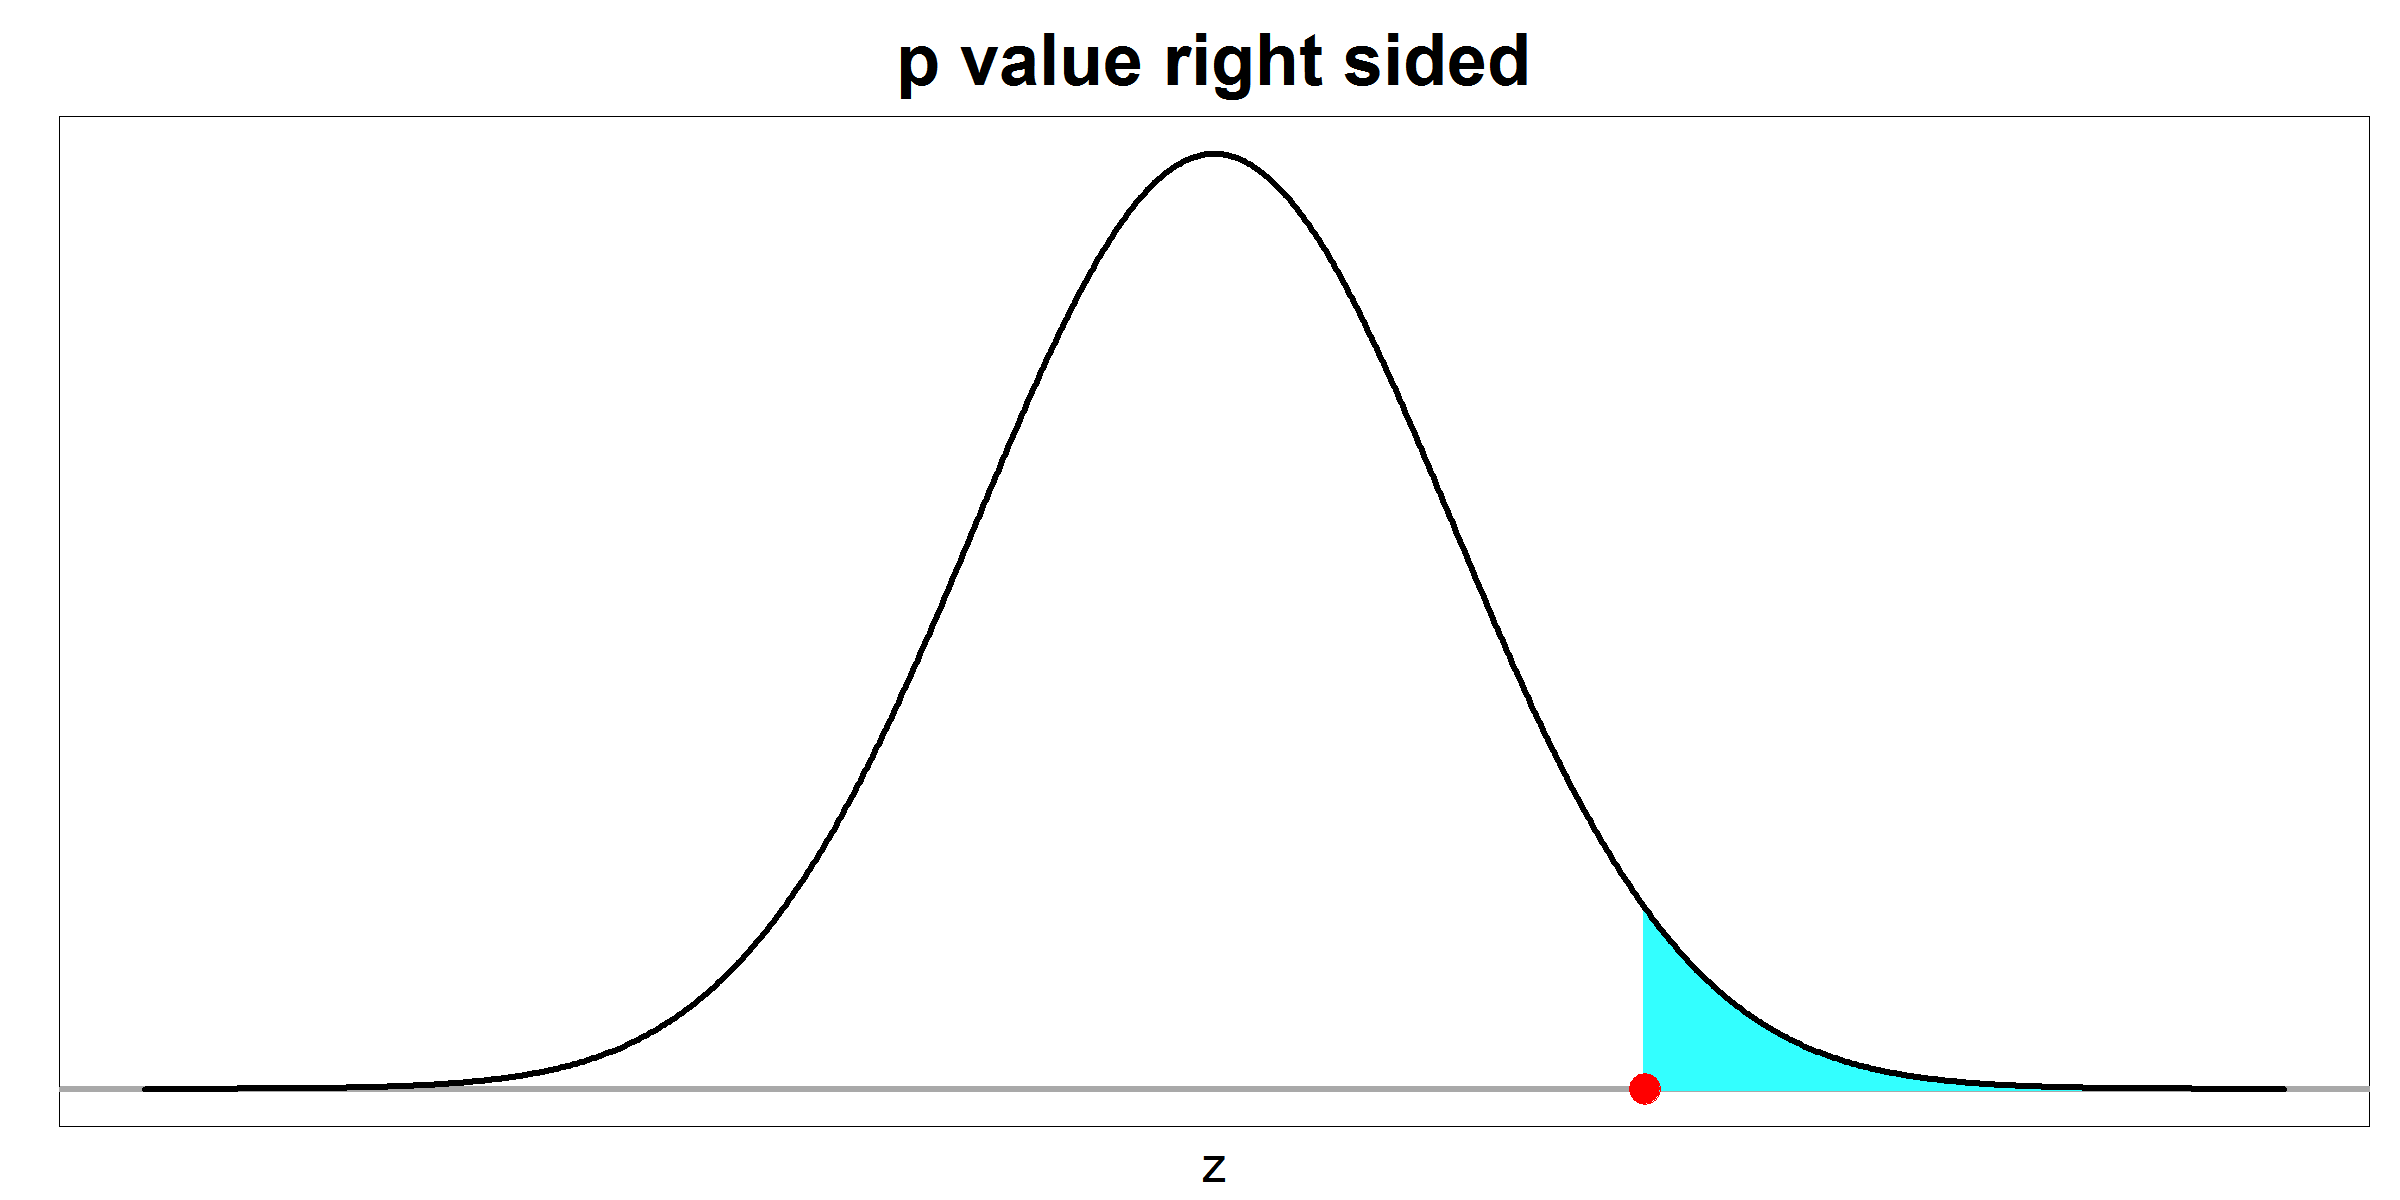 p value - right sided